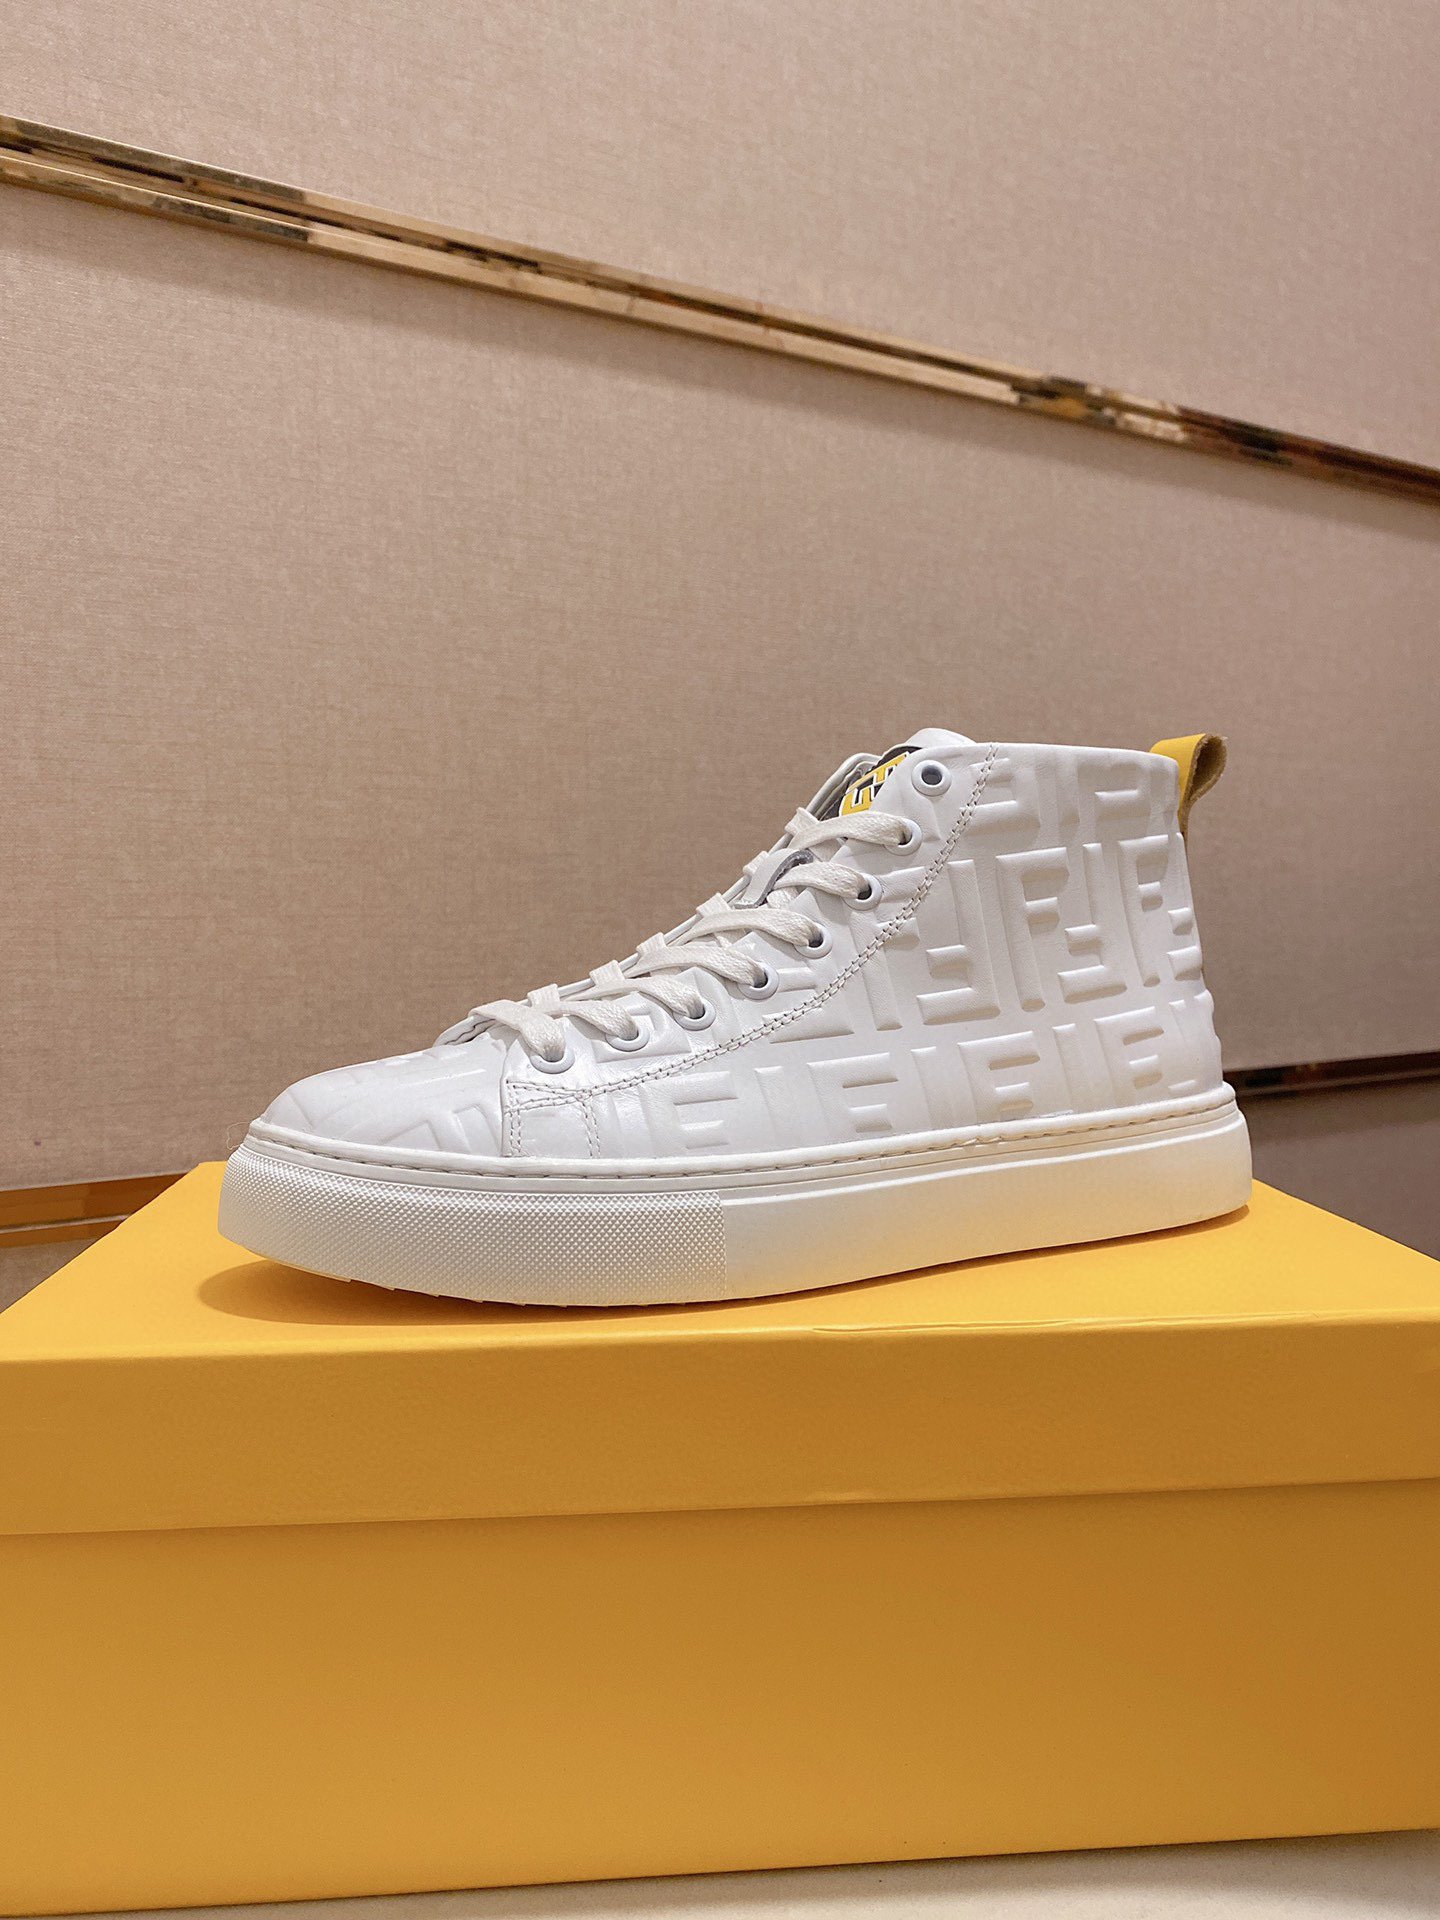 Image of Fendi Men's Leather Fashion High Top Sneakers Shoes